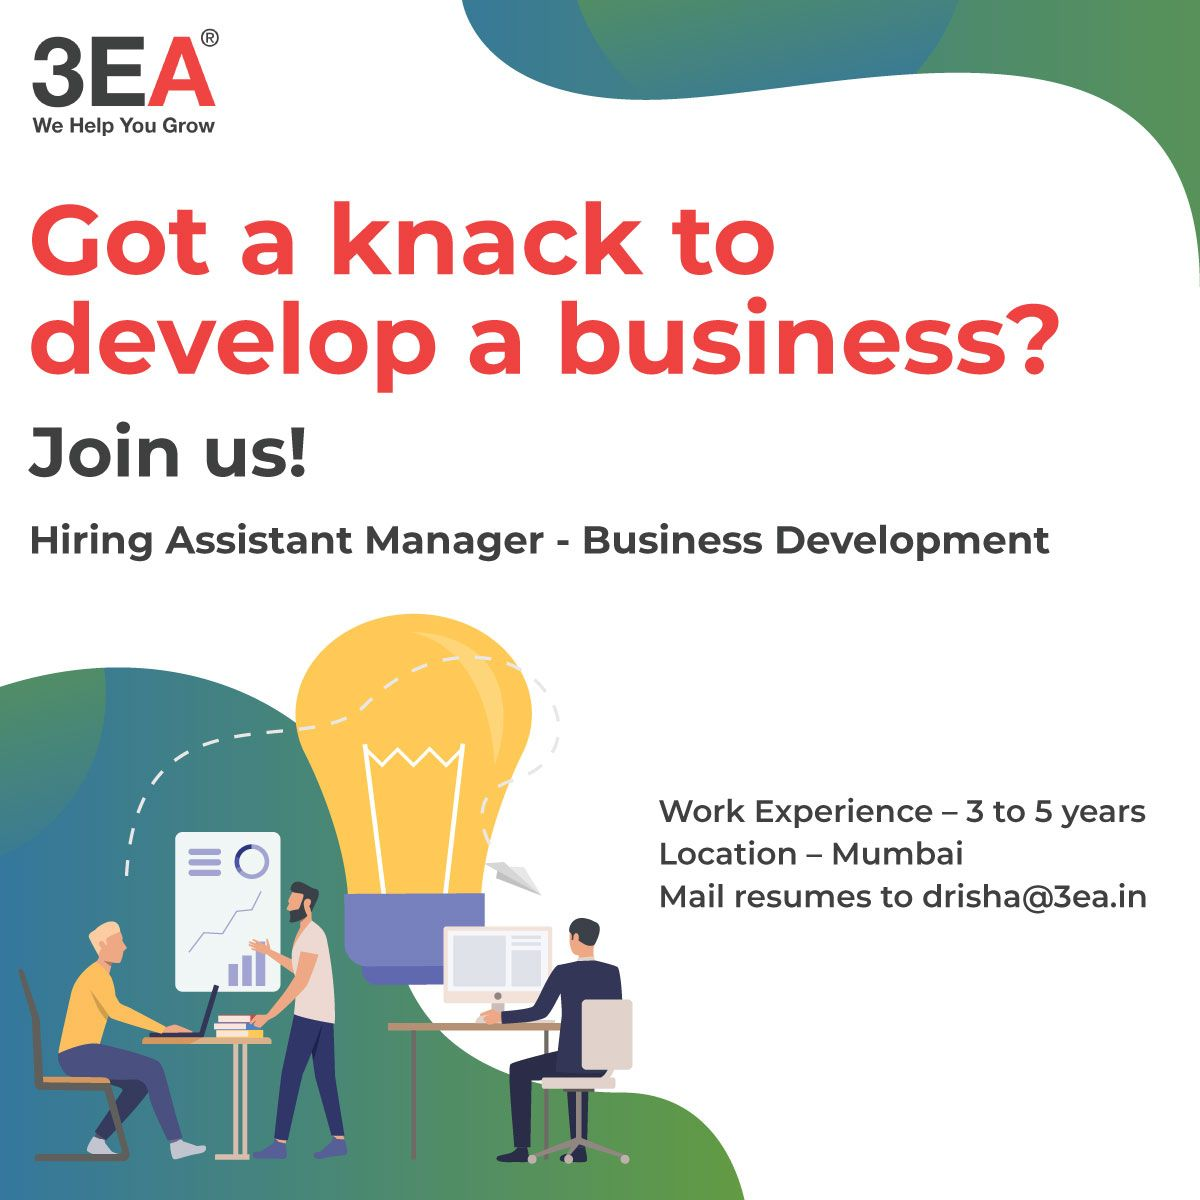 We are looking for an Assistant Manager Business